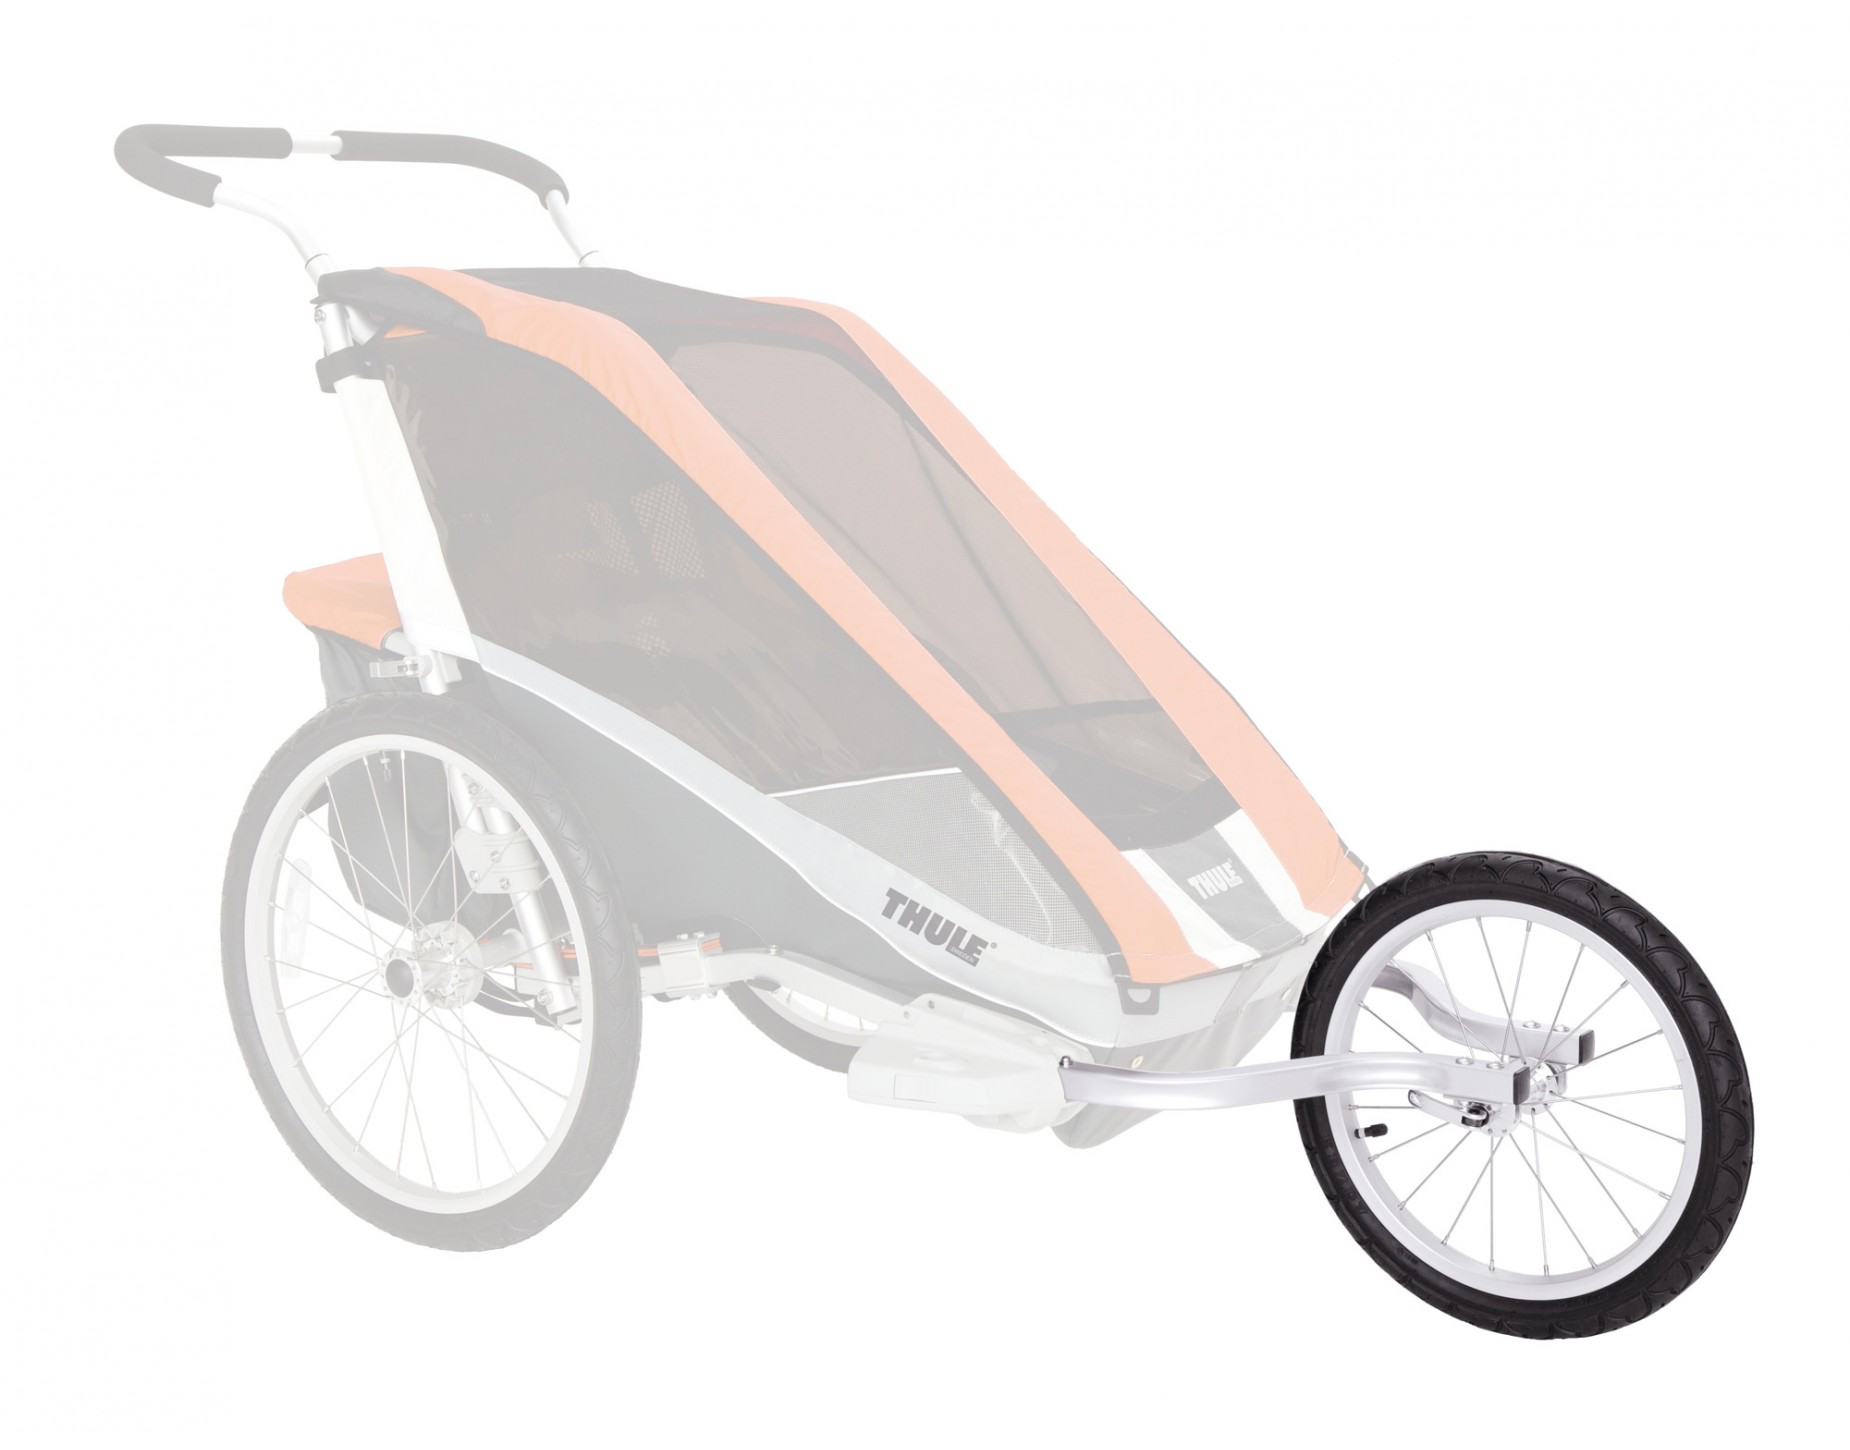 thule chariot jogging kit for cougar 1 2 everything you need rose bikes. Black Bedroom Furniture Sets. Home Design Ideas